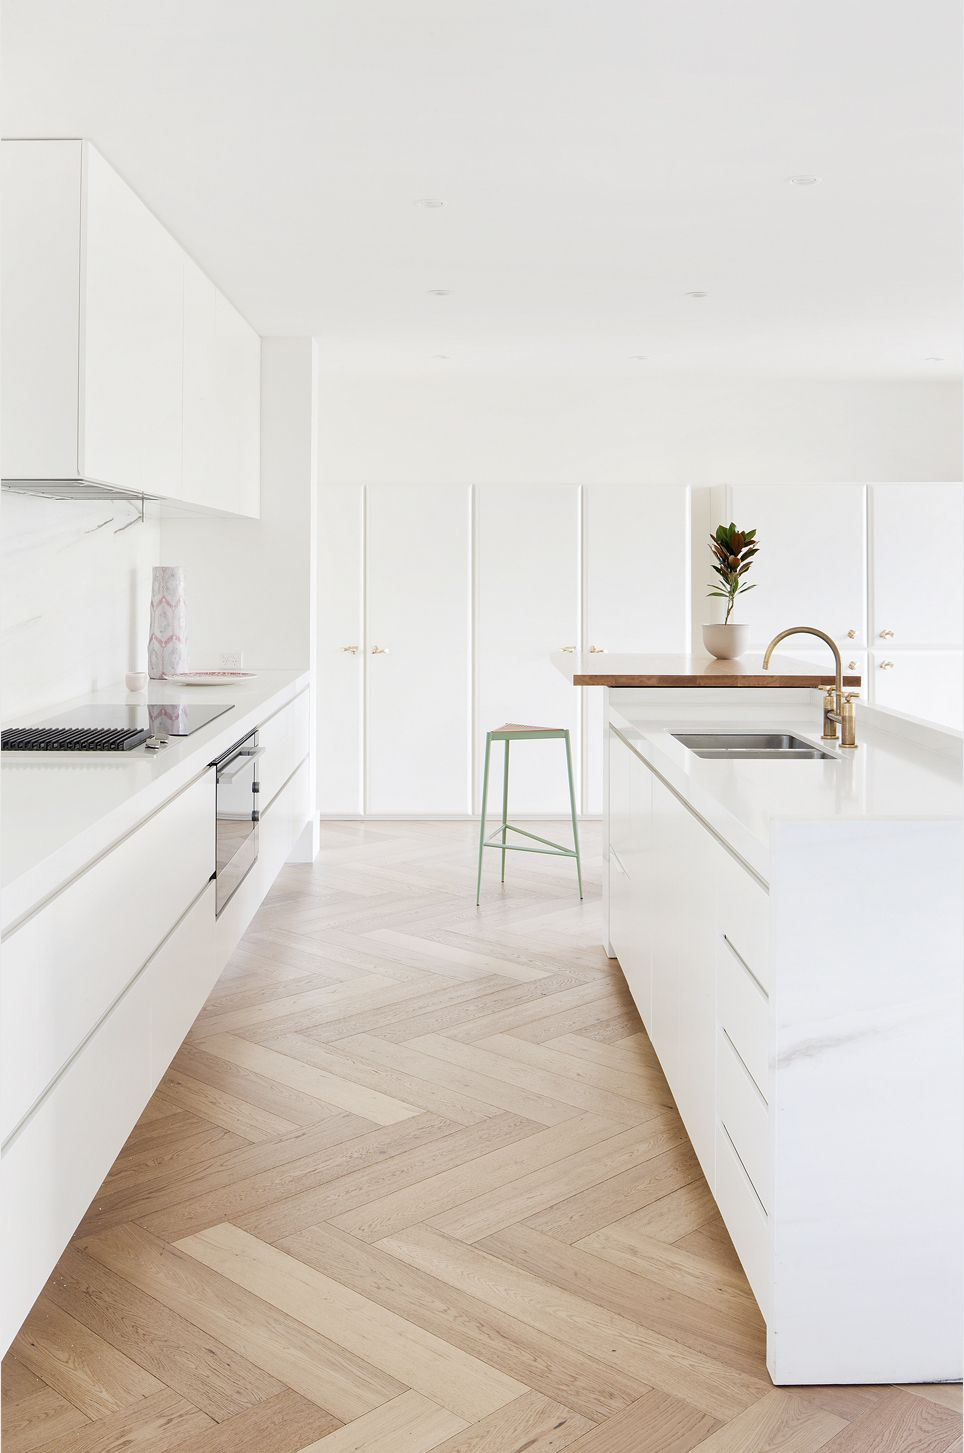 toorak residence kitchens pinterest parkett k che und boden. Black Bedroom Furniture Sets. Home Design Ideas